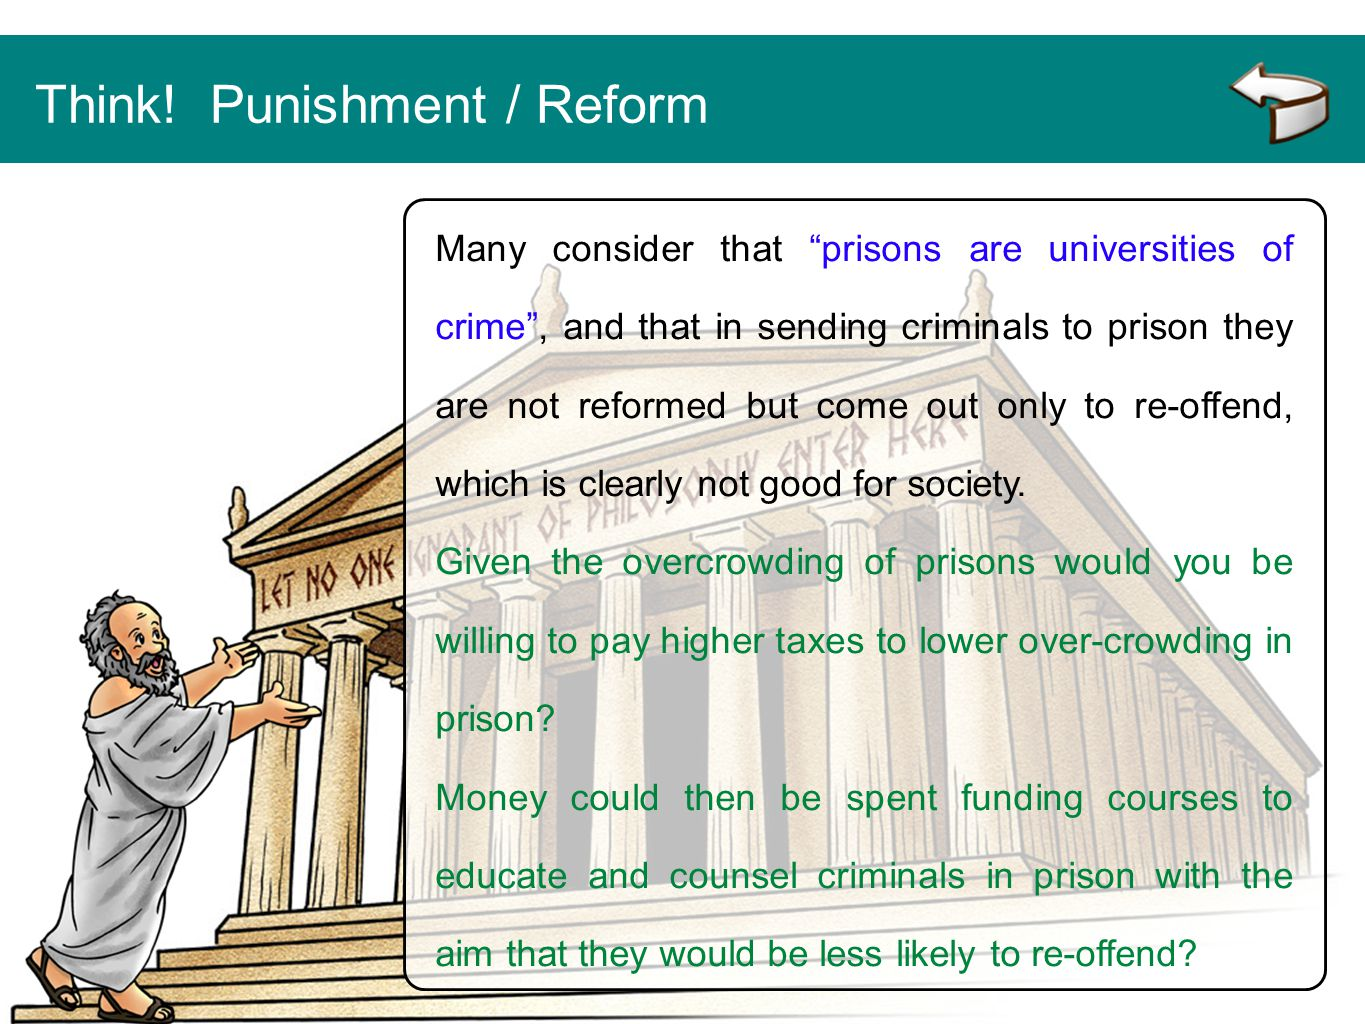 Think! Punishment / Reform